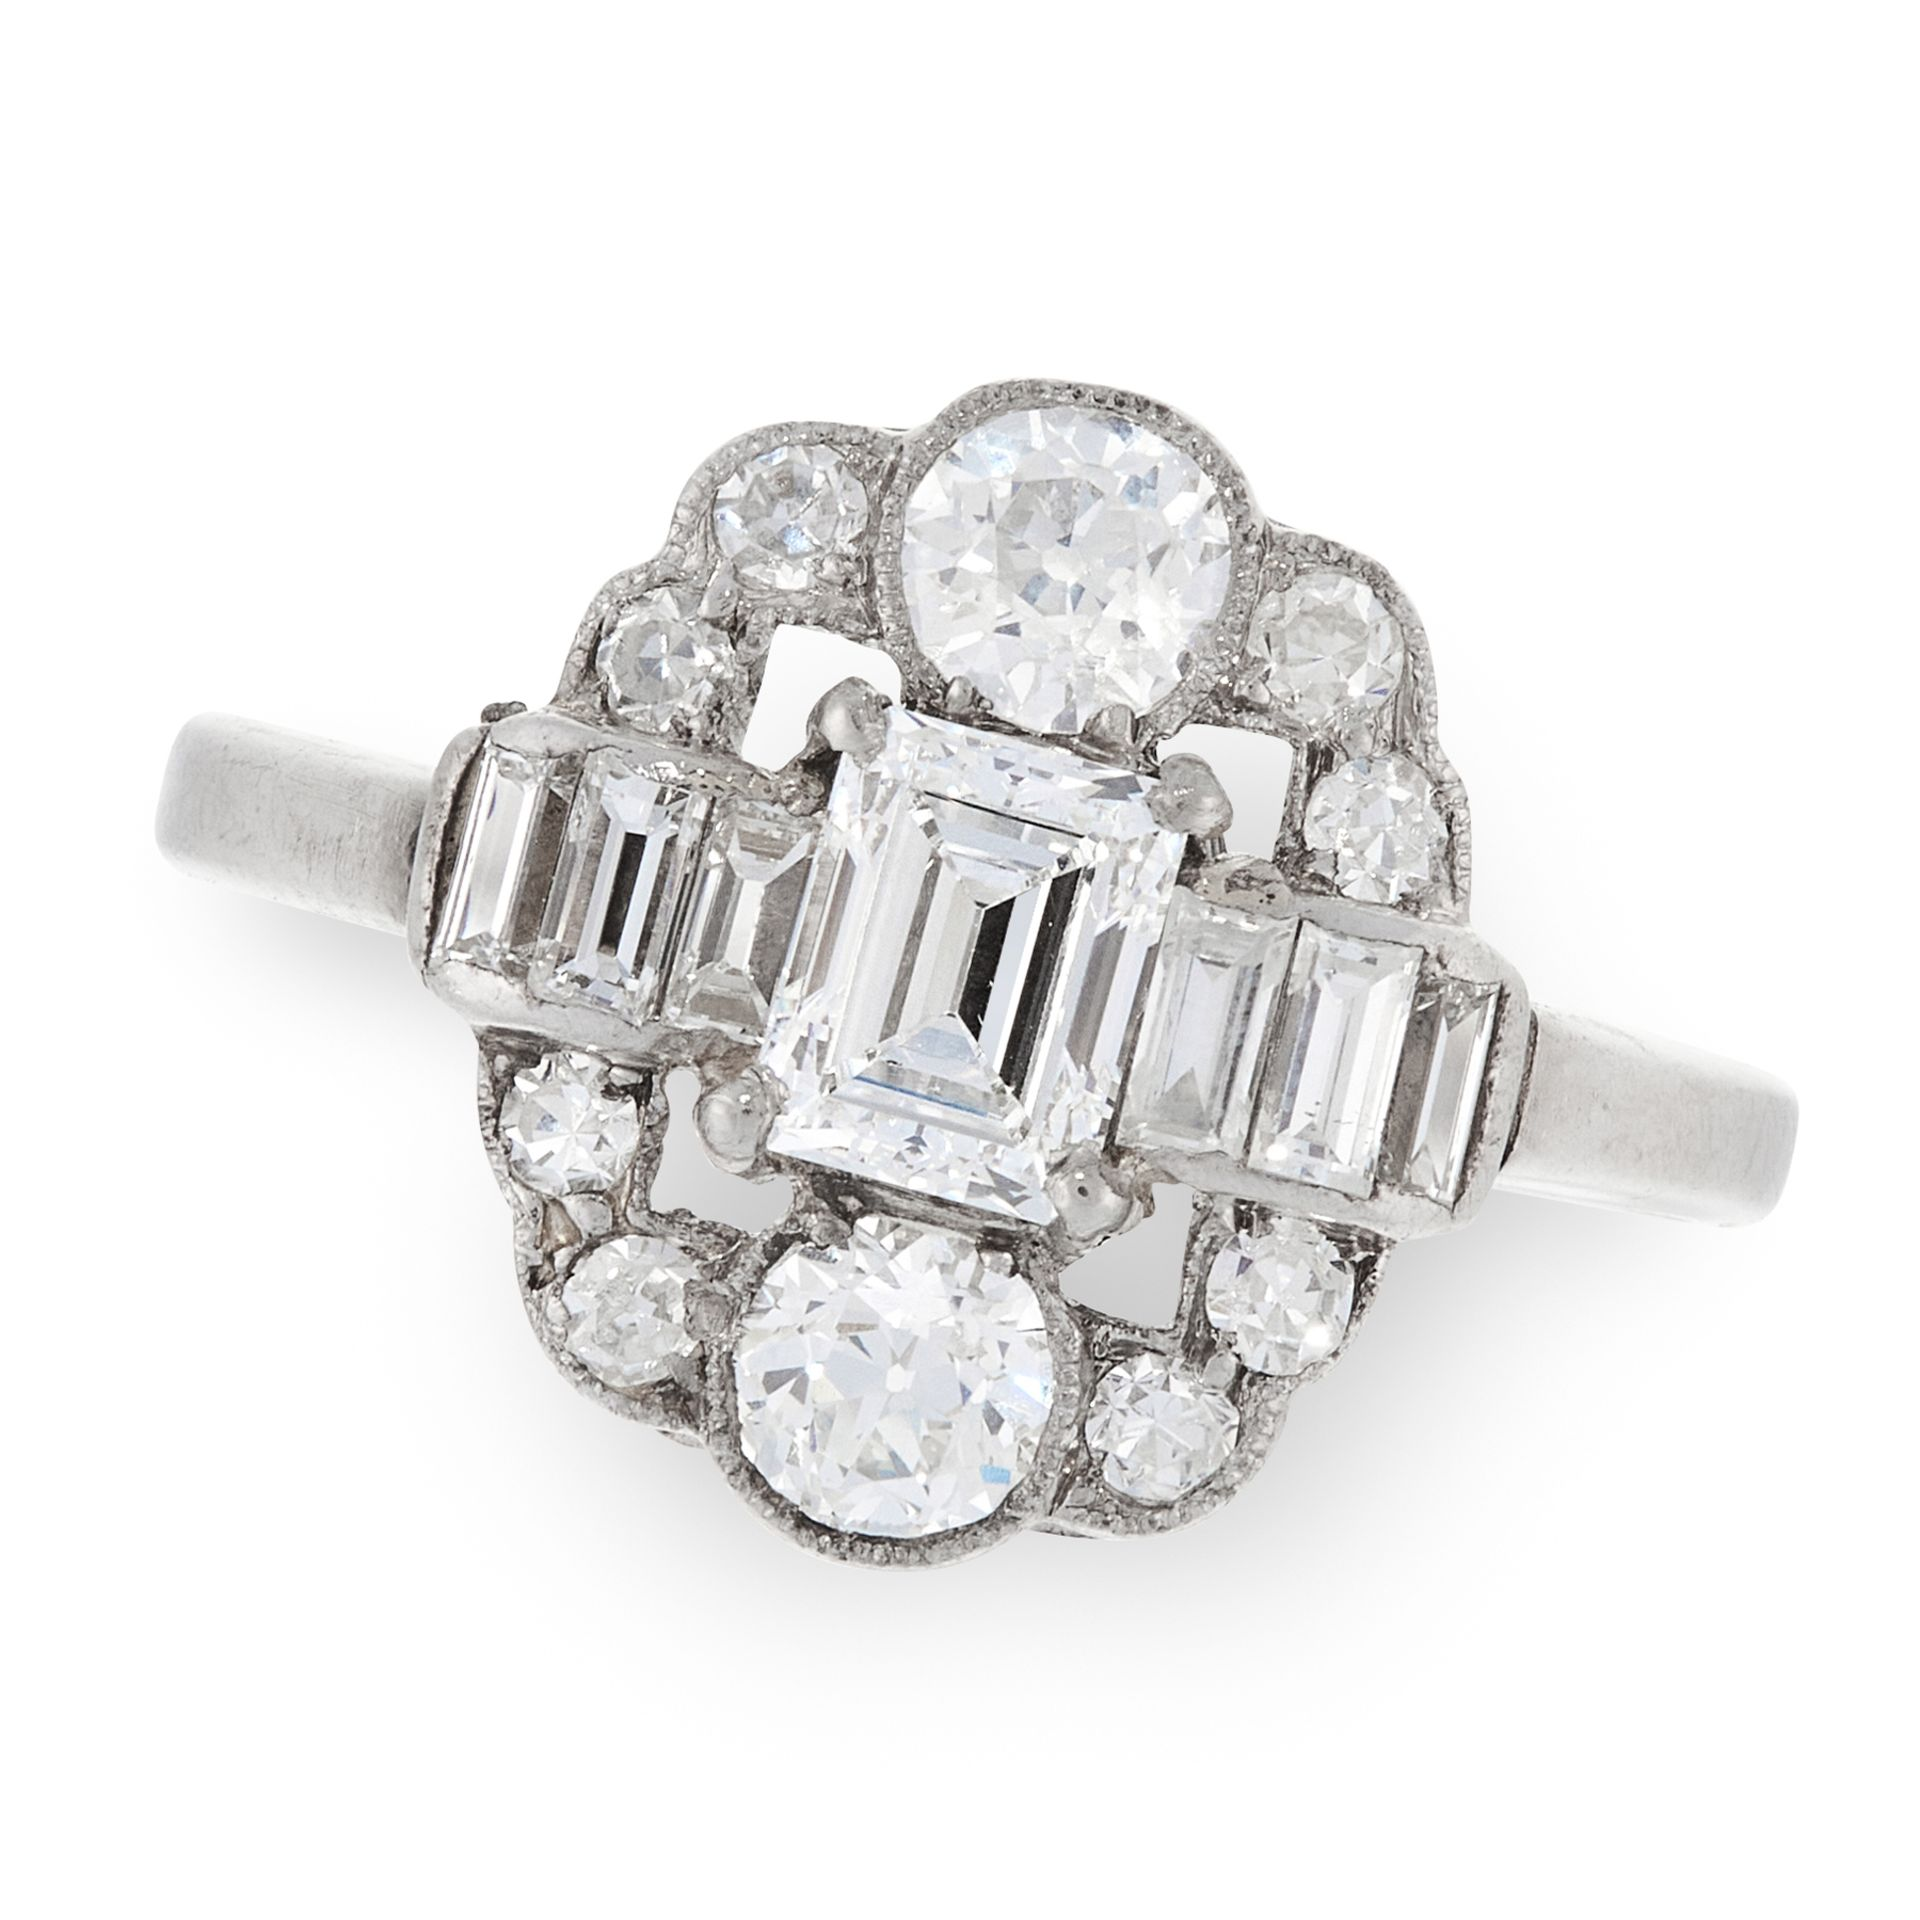 A DIAMOND DRESS RING in platinum, set with a central emerald cut diamond of 0.52 carats, flanked